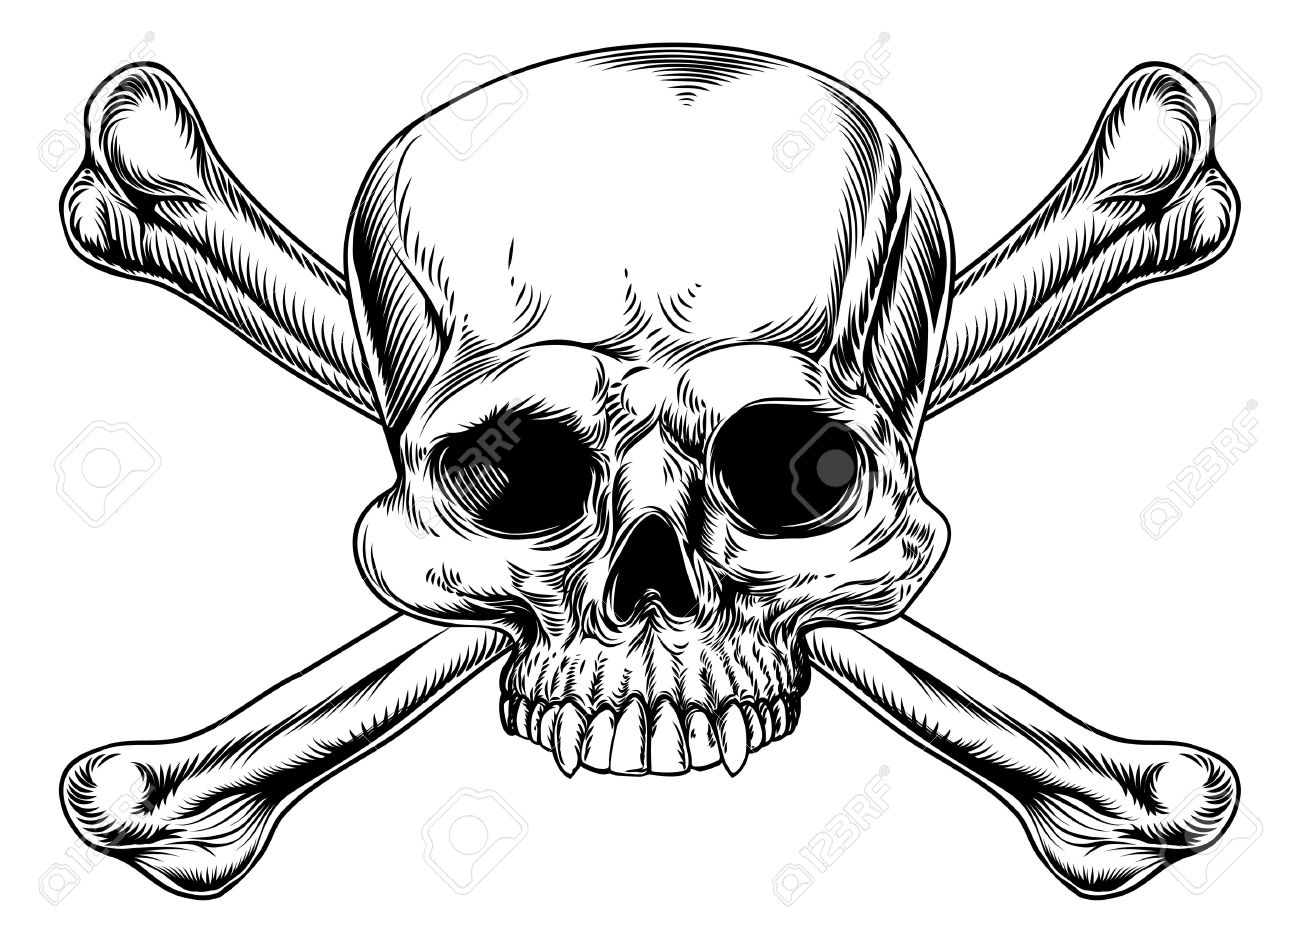 1300x943 Skull And Crossed Bones Drawing In A Vintage Woodcut Style Royalty